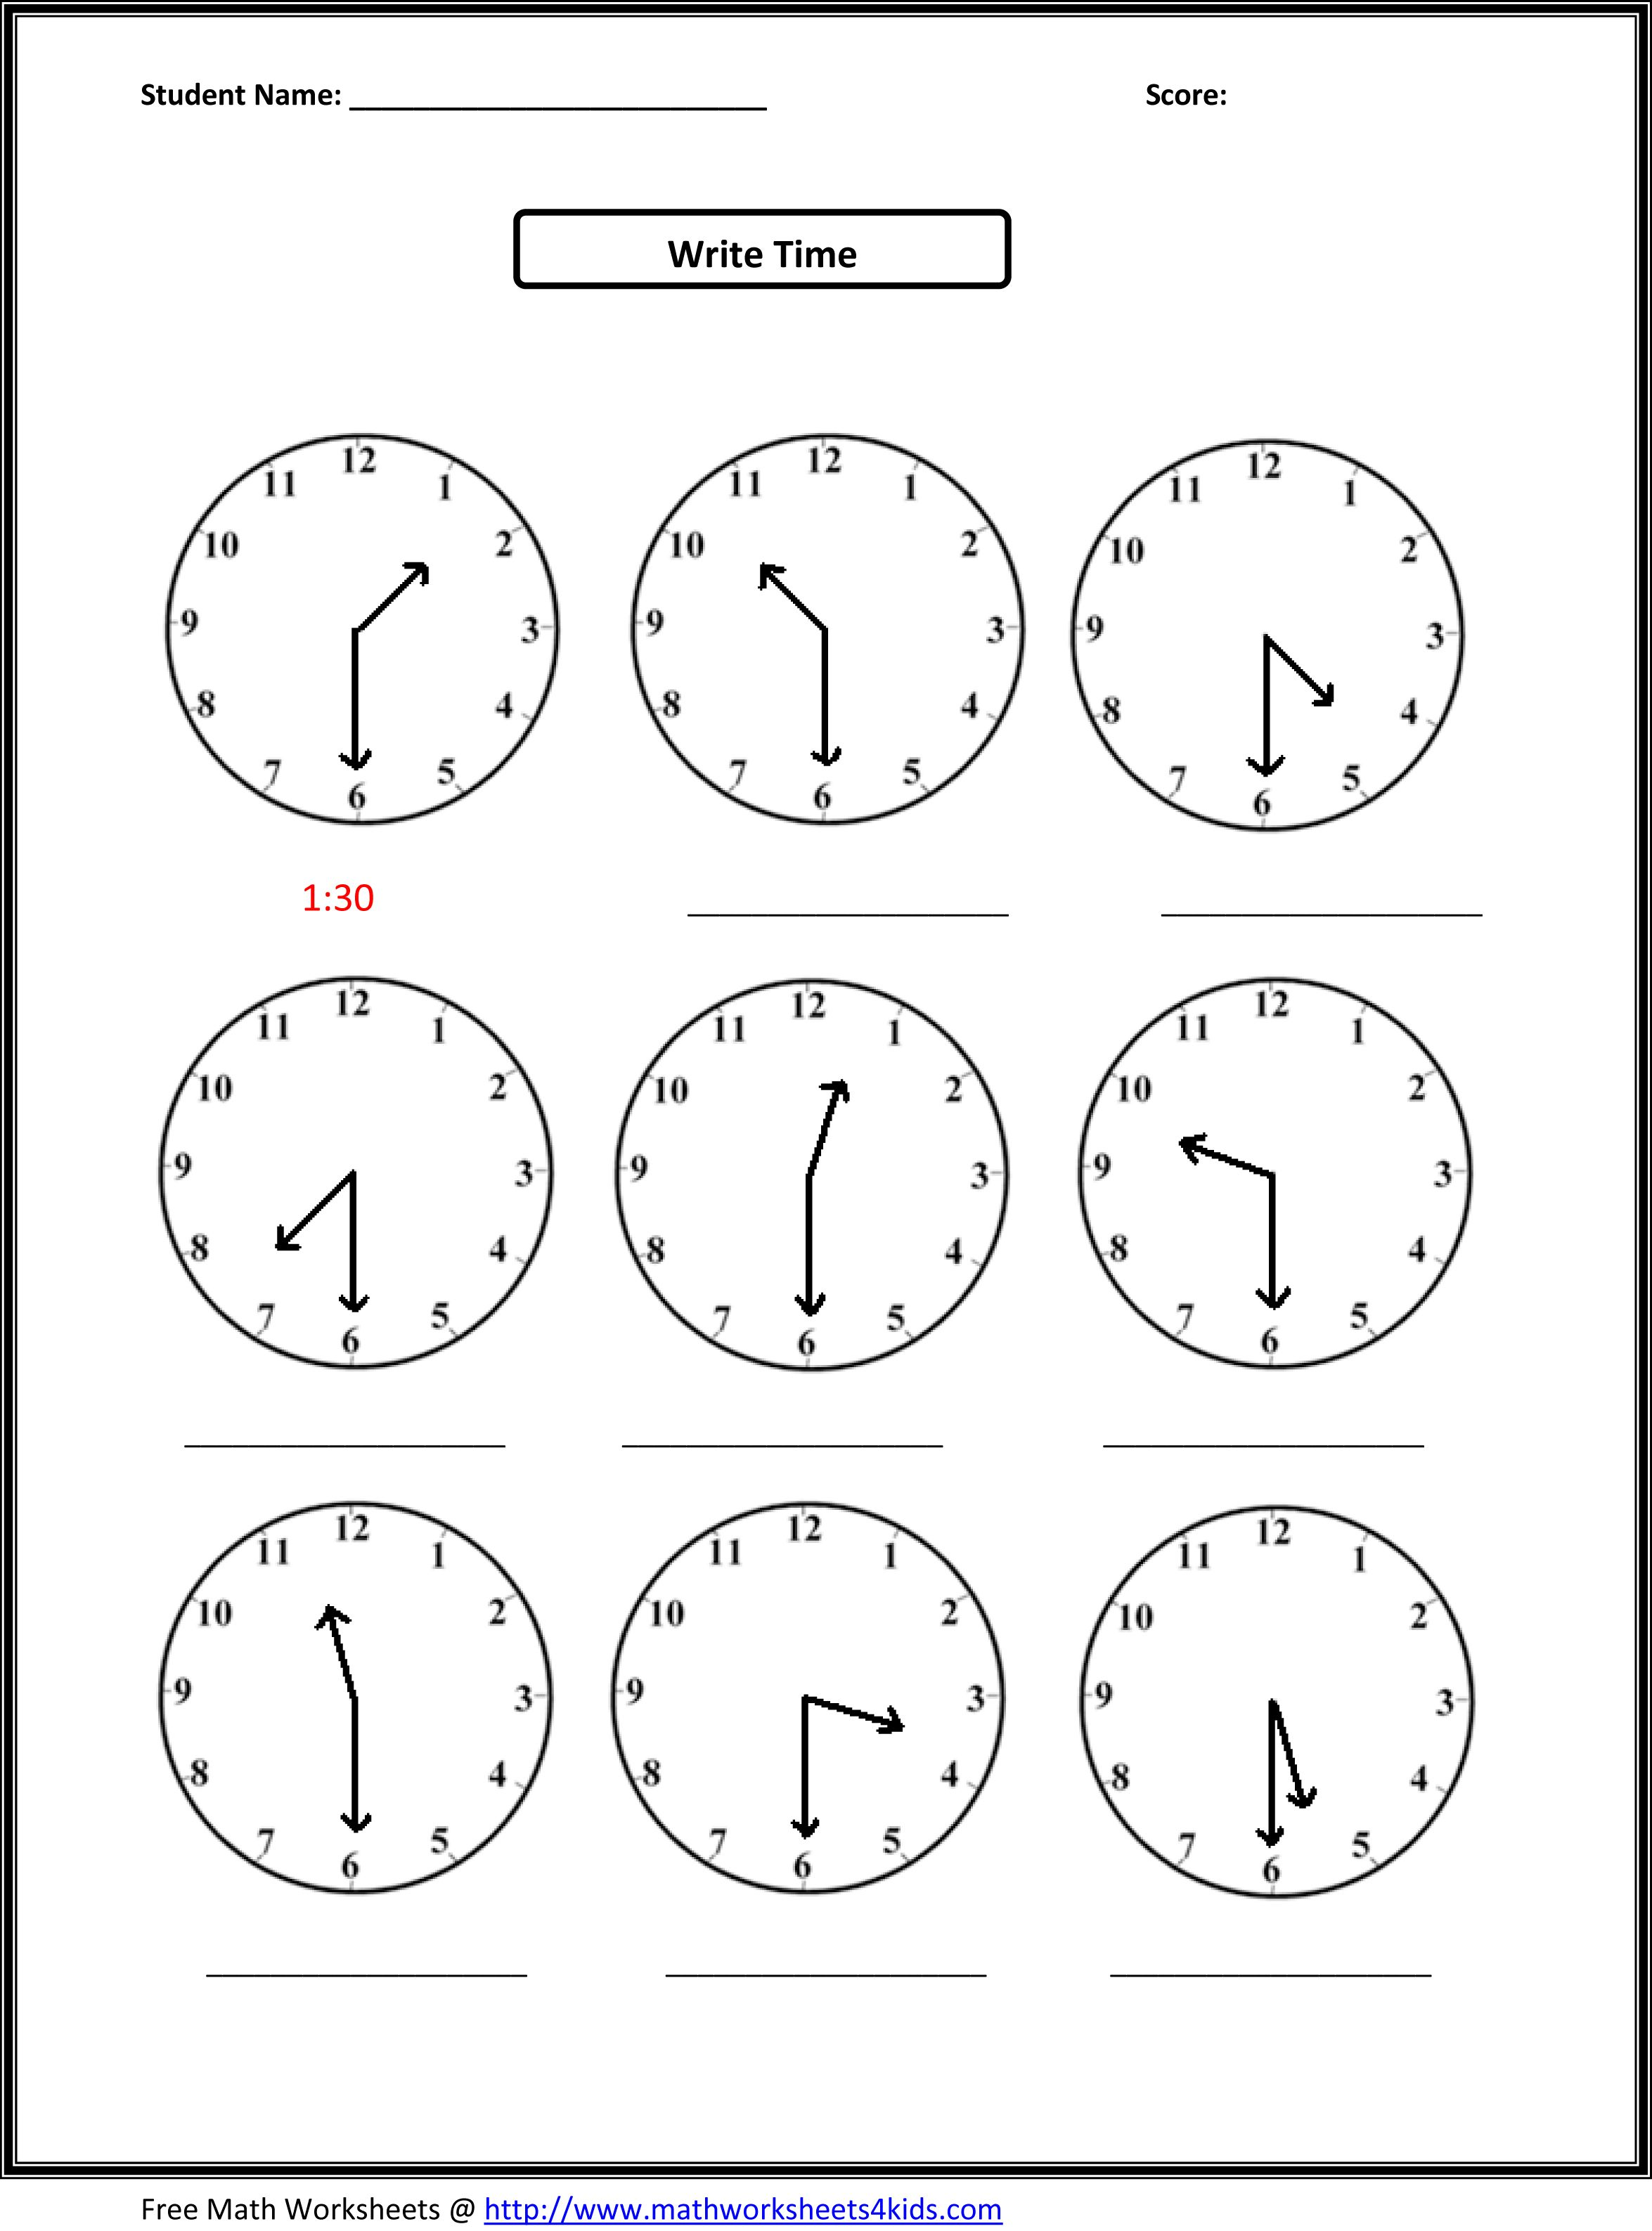 Weirdmailus  Mesmerizing Worksheet On Time For Grade   Reocurent With Magnificent Free Printable Telling Time Worksheets Nd Grade  Reocurent With Charming Graphiti Math Worksheets Also Figurative Language Worksheets Th Grade In Addition Cesar Chavez Worksheet And Composite Score Worksheet Usmc As Well As Factoring Special Products Worksheet Additionally Number  Worksheet From Reocurentcom With Weirdmailus  Magnificent Worksheet On Time For Grade   Reocurent With Charming Free Printable Telling Time Worksheets Nd Grade  Reocurent And Mesmerizing Graphiti Math Worksheets Also Figurative Language Worksheets Th Grade In Addition Cesar Chavez Worksheet From Reocurentcom